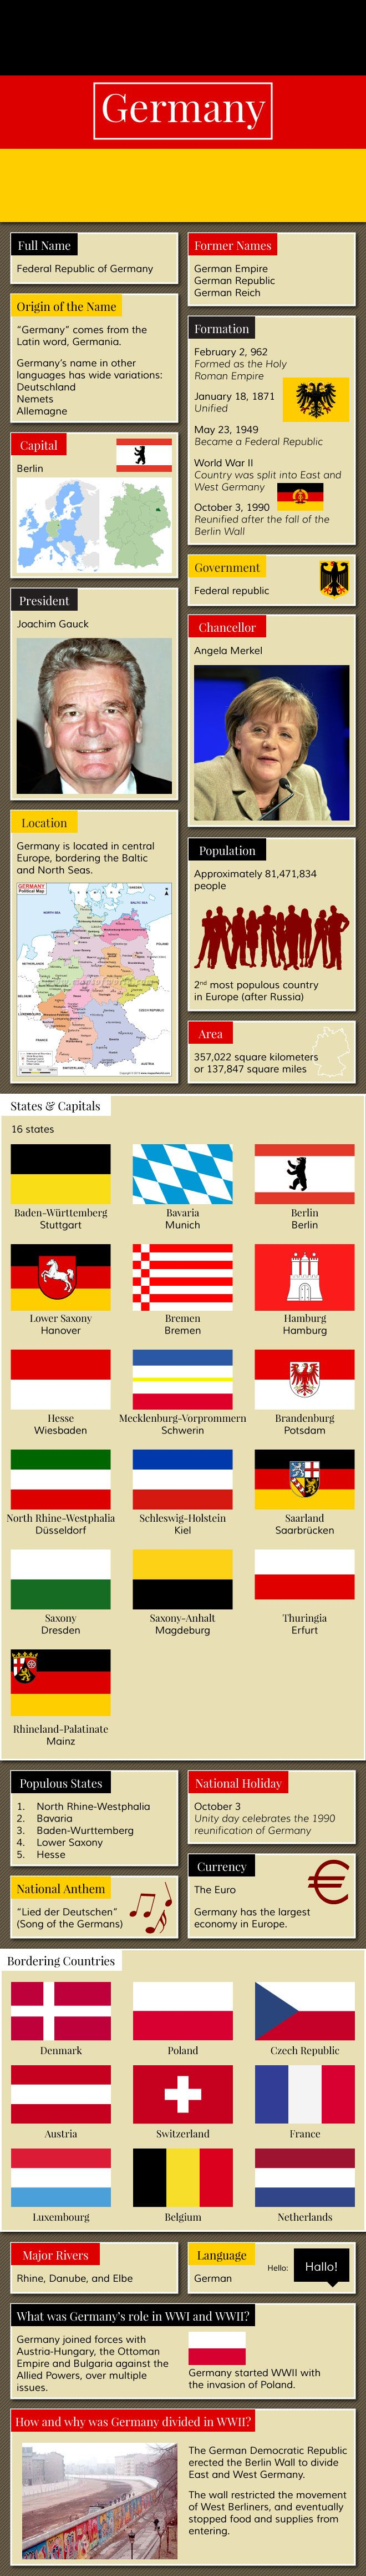 This pin gives tons of information on Germany.  Including things such as Germany's former names, the origin of the name, important dates and so much more!